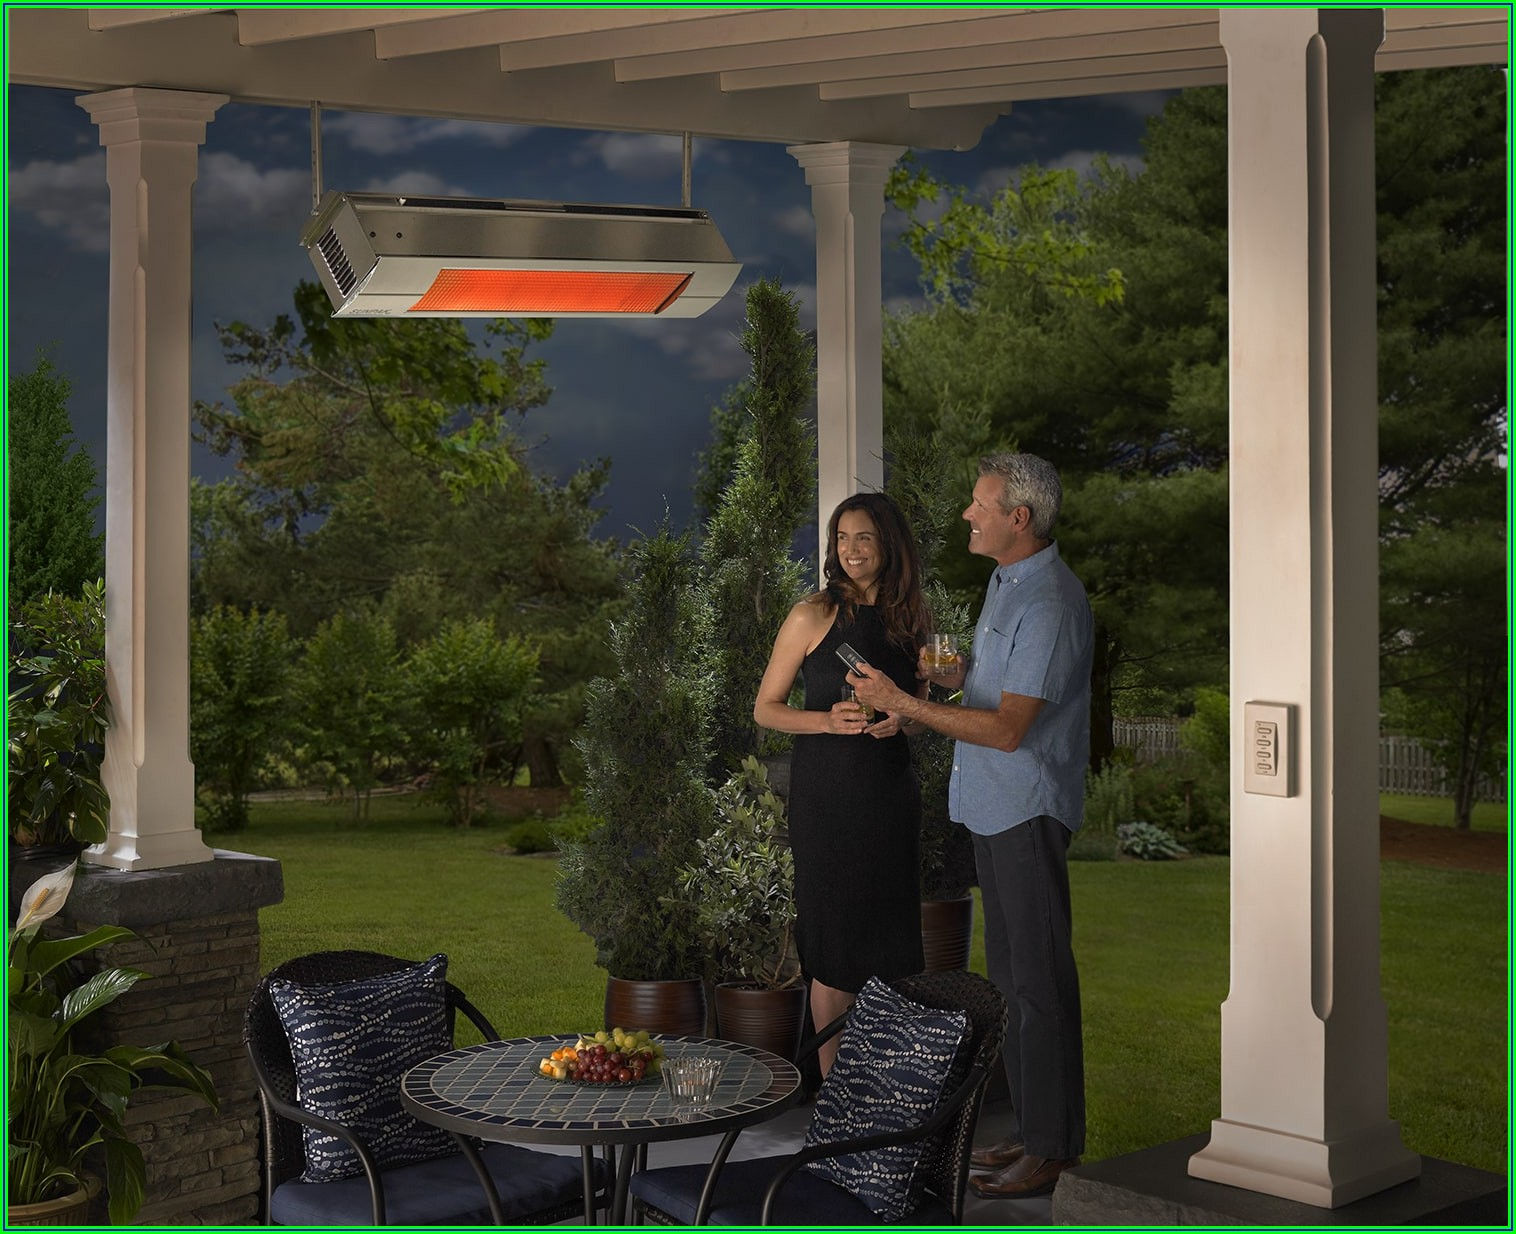 Sunpak S25 Patio Heater